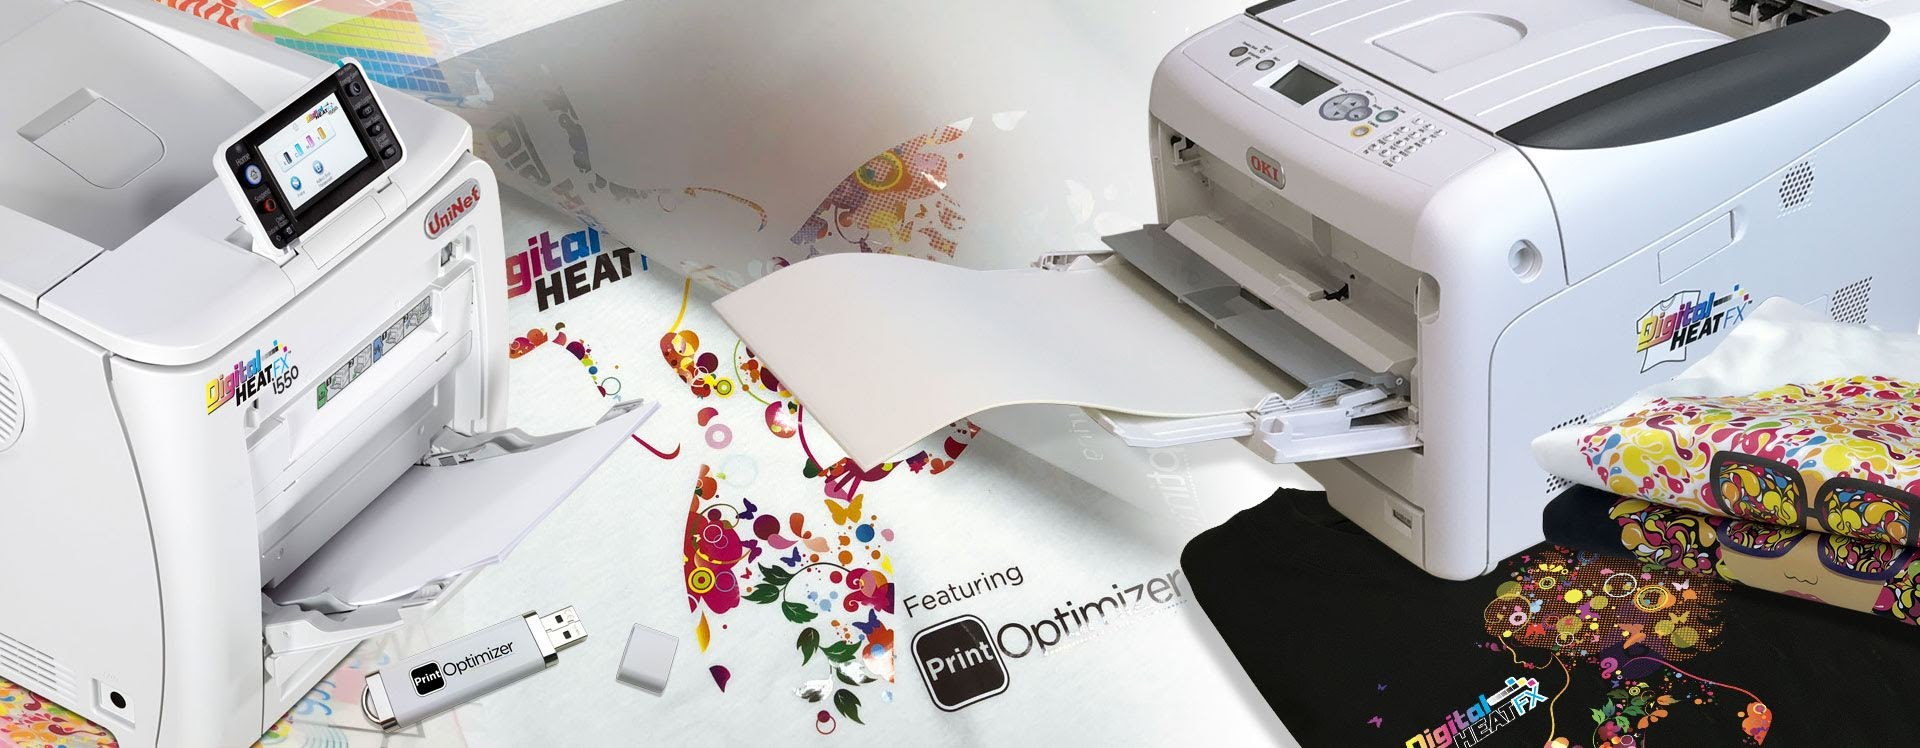 Digital HeatFX T-Shirt Transfer Printers and More